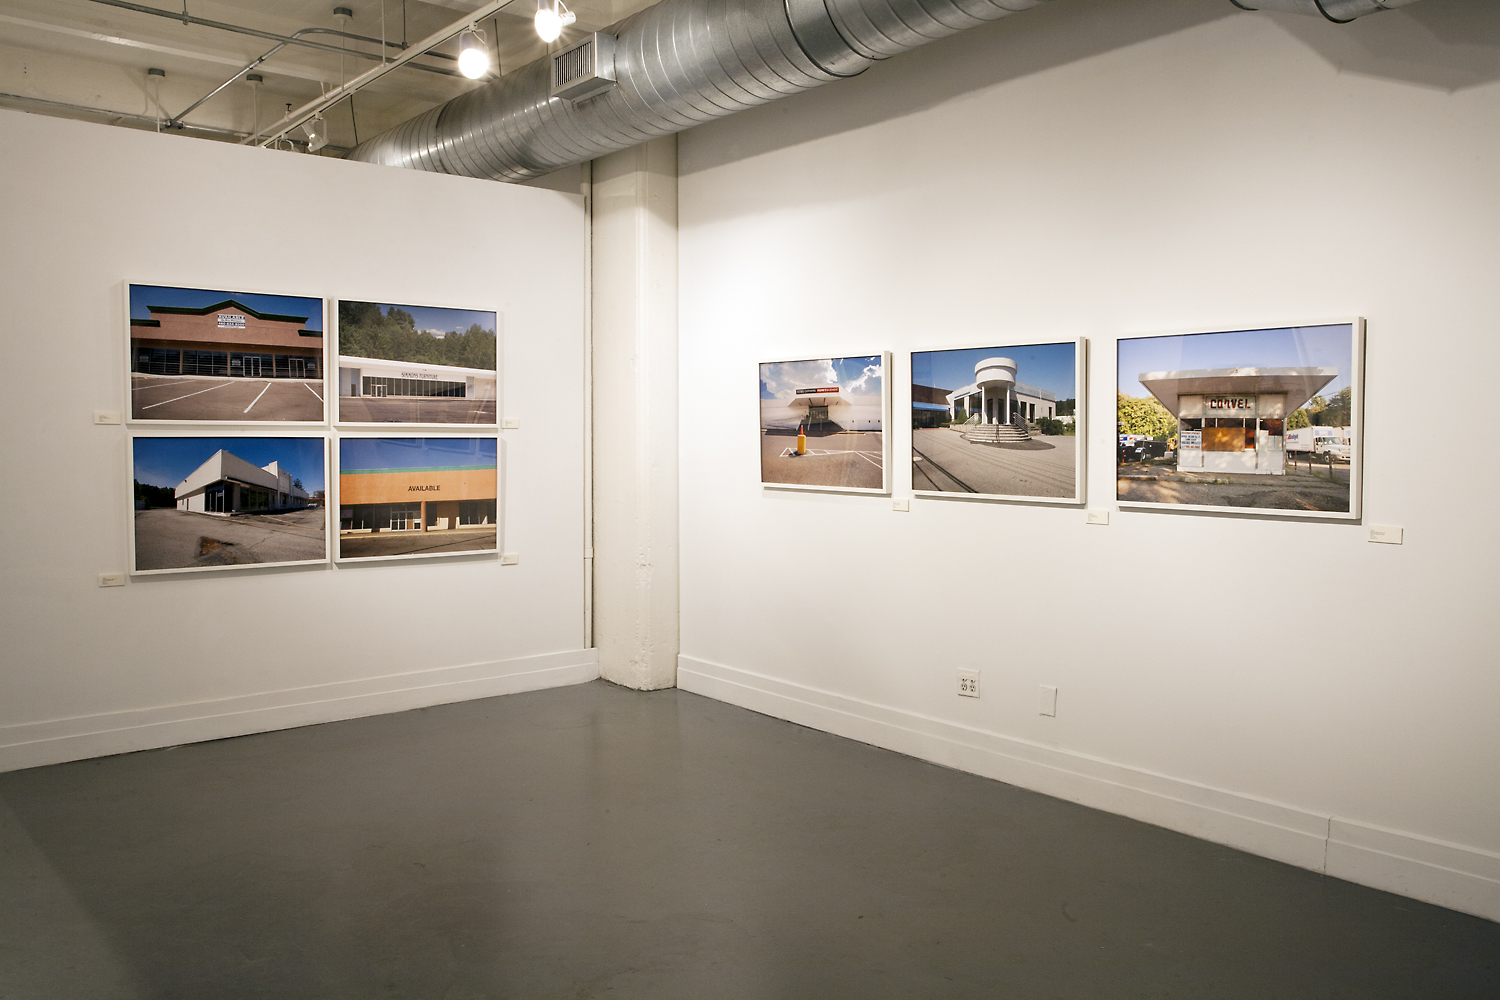 Suburban Landscapes: The Architecture of Nowhere, 2013, Installation view